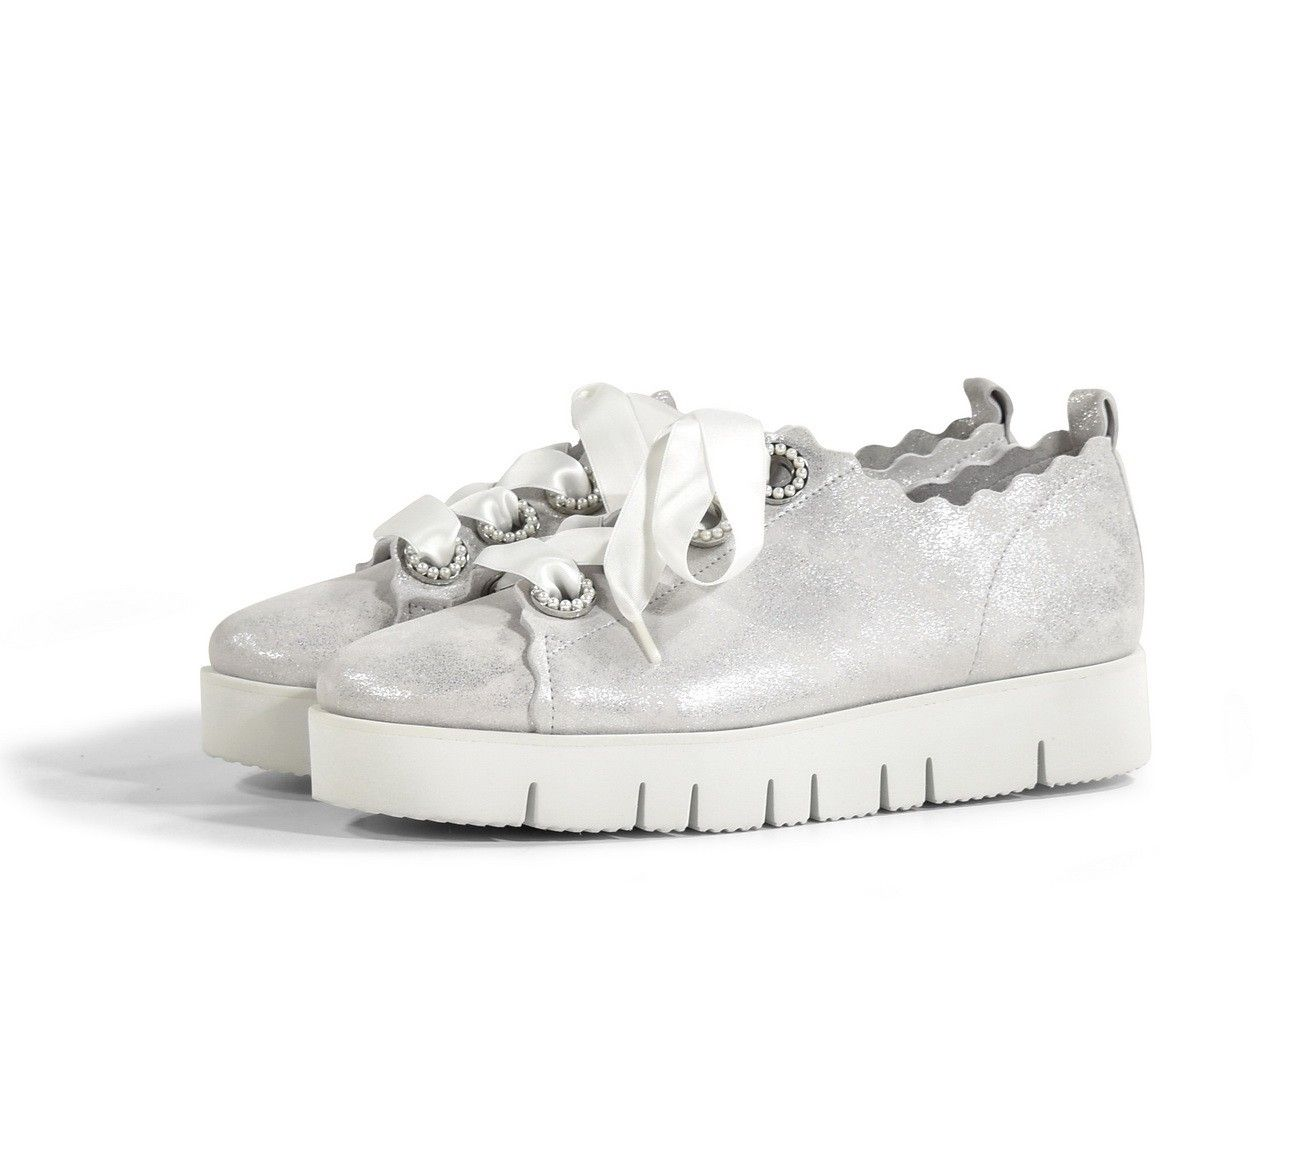 KENNEL & SCHMENGER - Damen Schuh - Assam Washed - White/Pearl